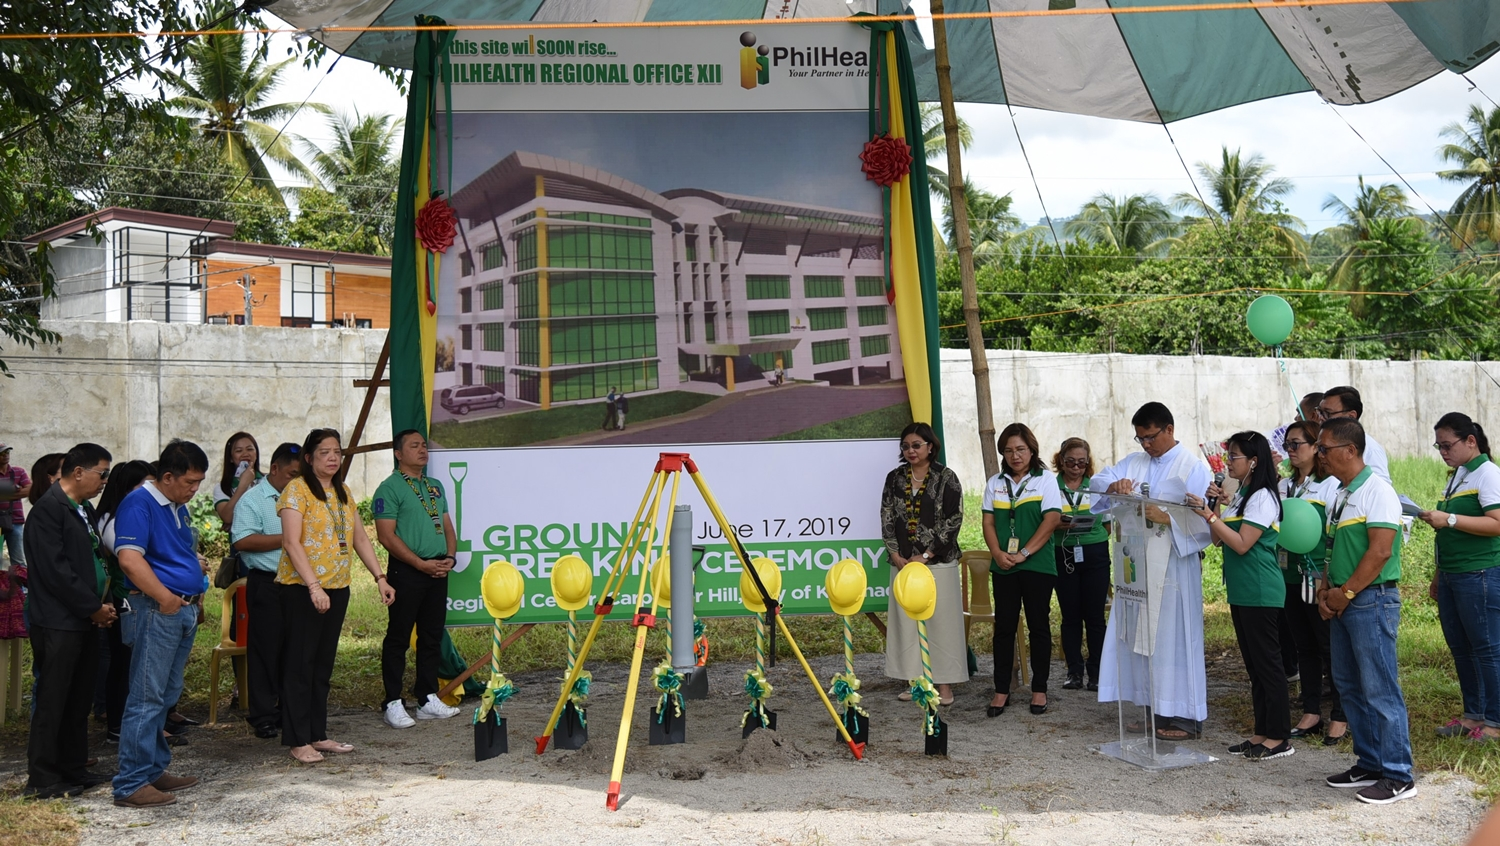 Groundbreaking Ceremony for PhilHealth Regional Office XII held